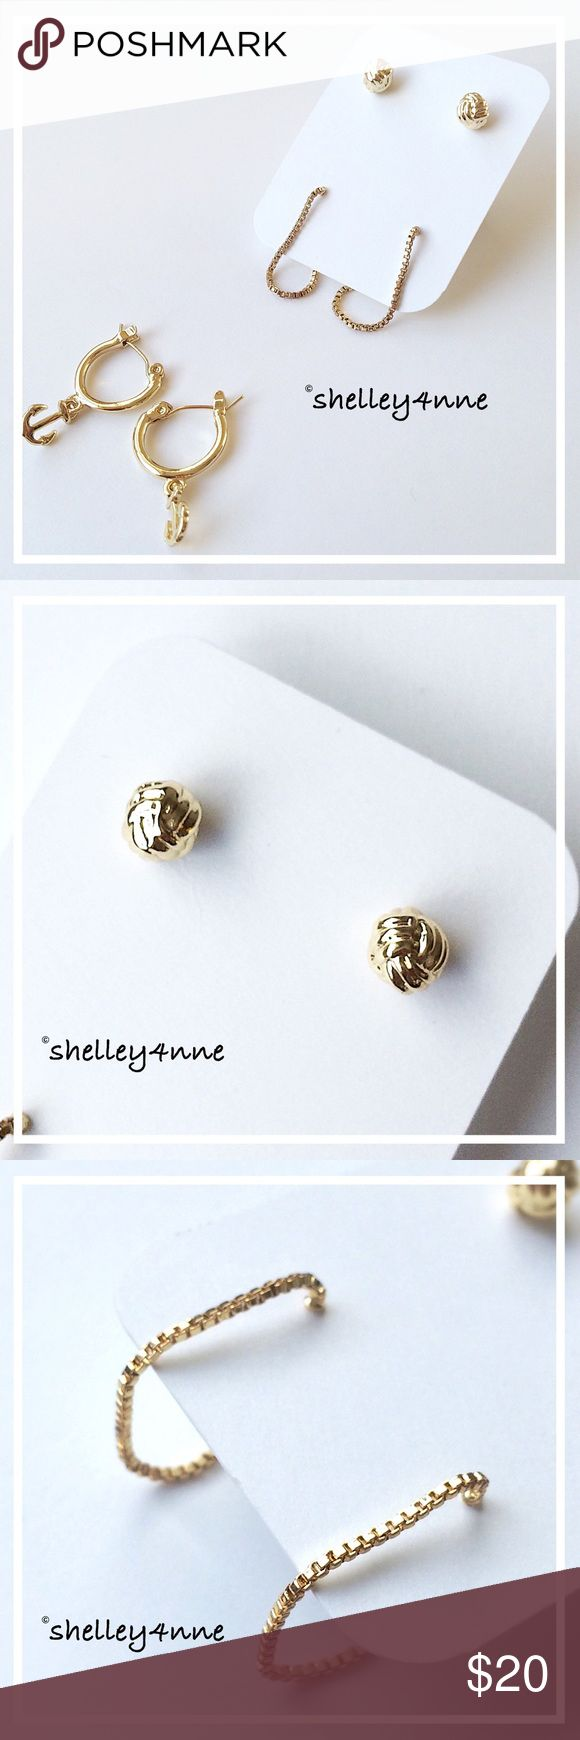 Nautical Earring Set Three pairs of gold tone earrings: knot studs - rope drops - anchor hoops | never worn, perfect condition Jewelmint Jewelry Earrings